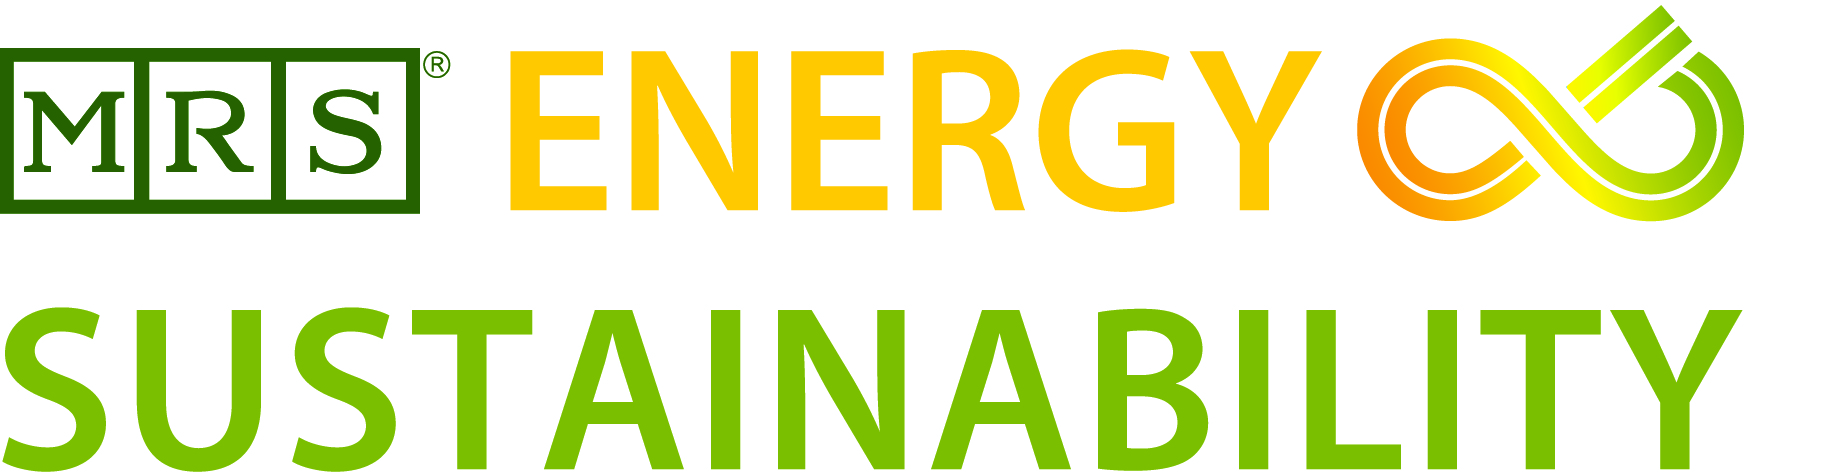 MRS Energy & Sustainability Logo